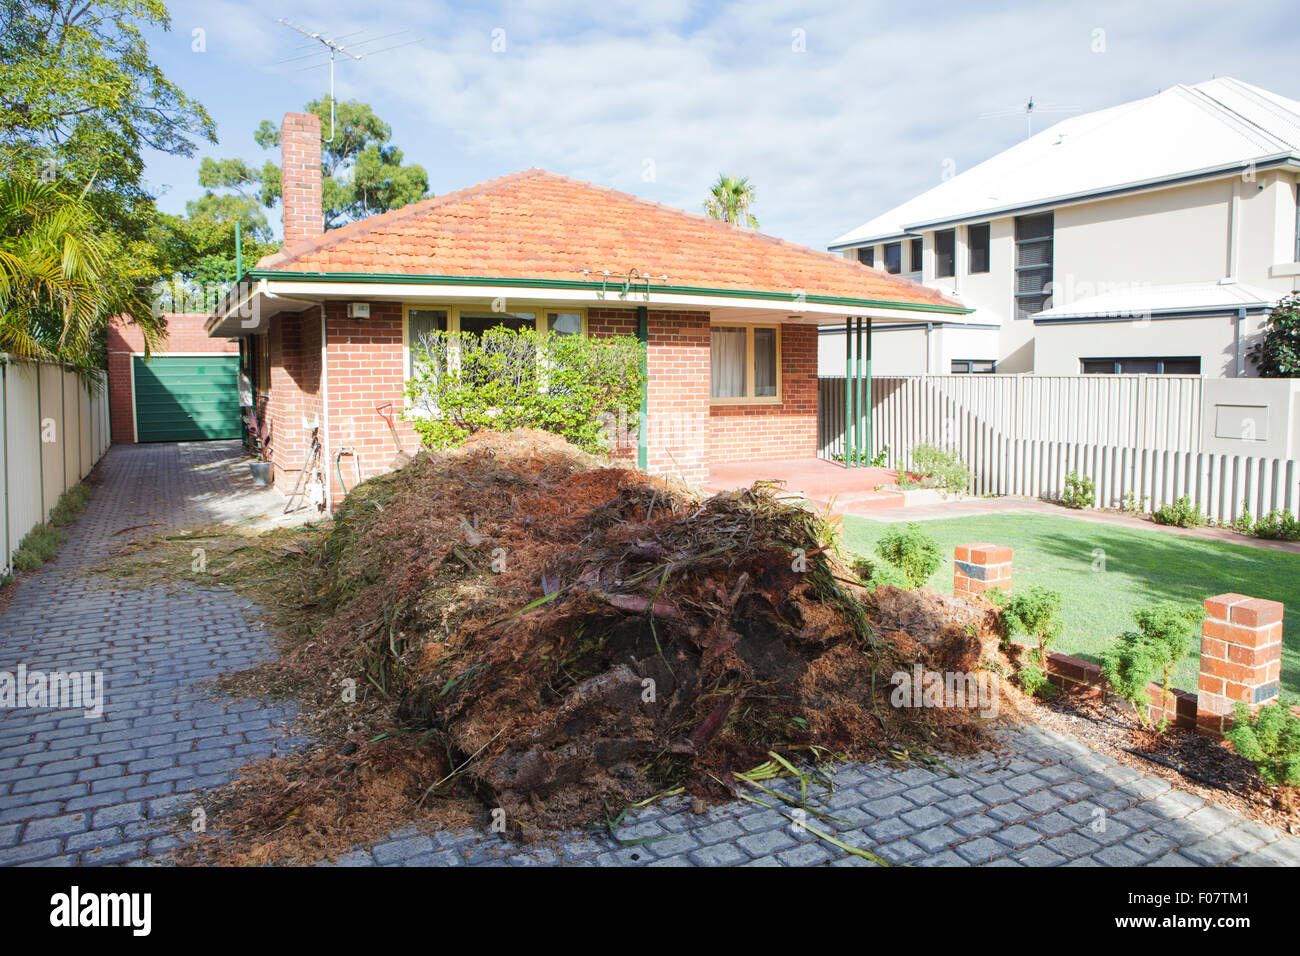 A large pile of mulch on a driveway. - Stock Image